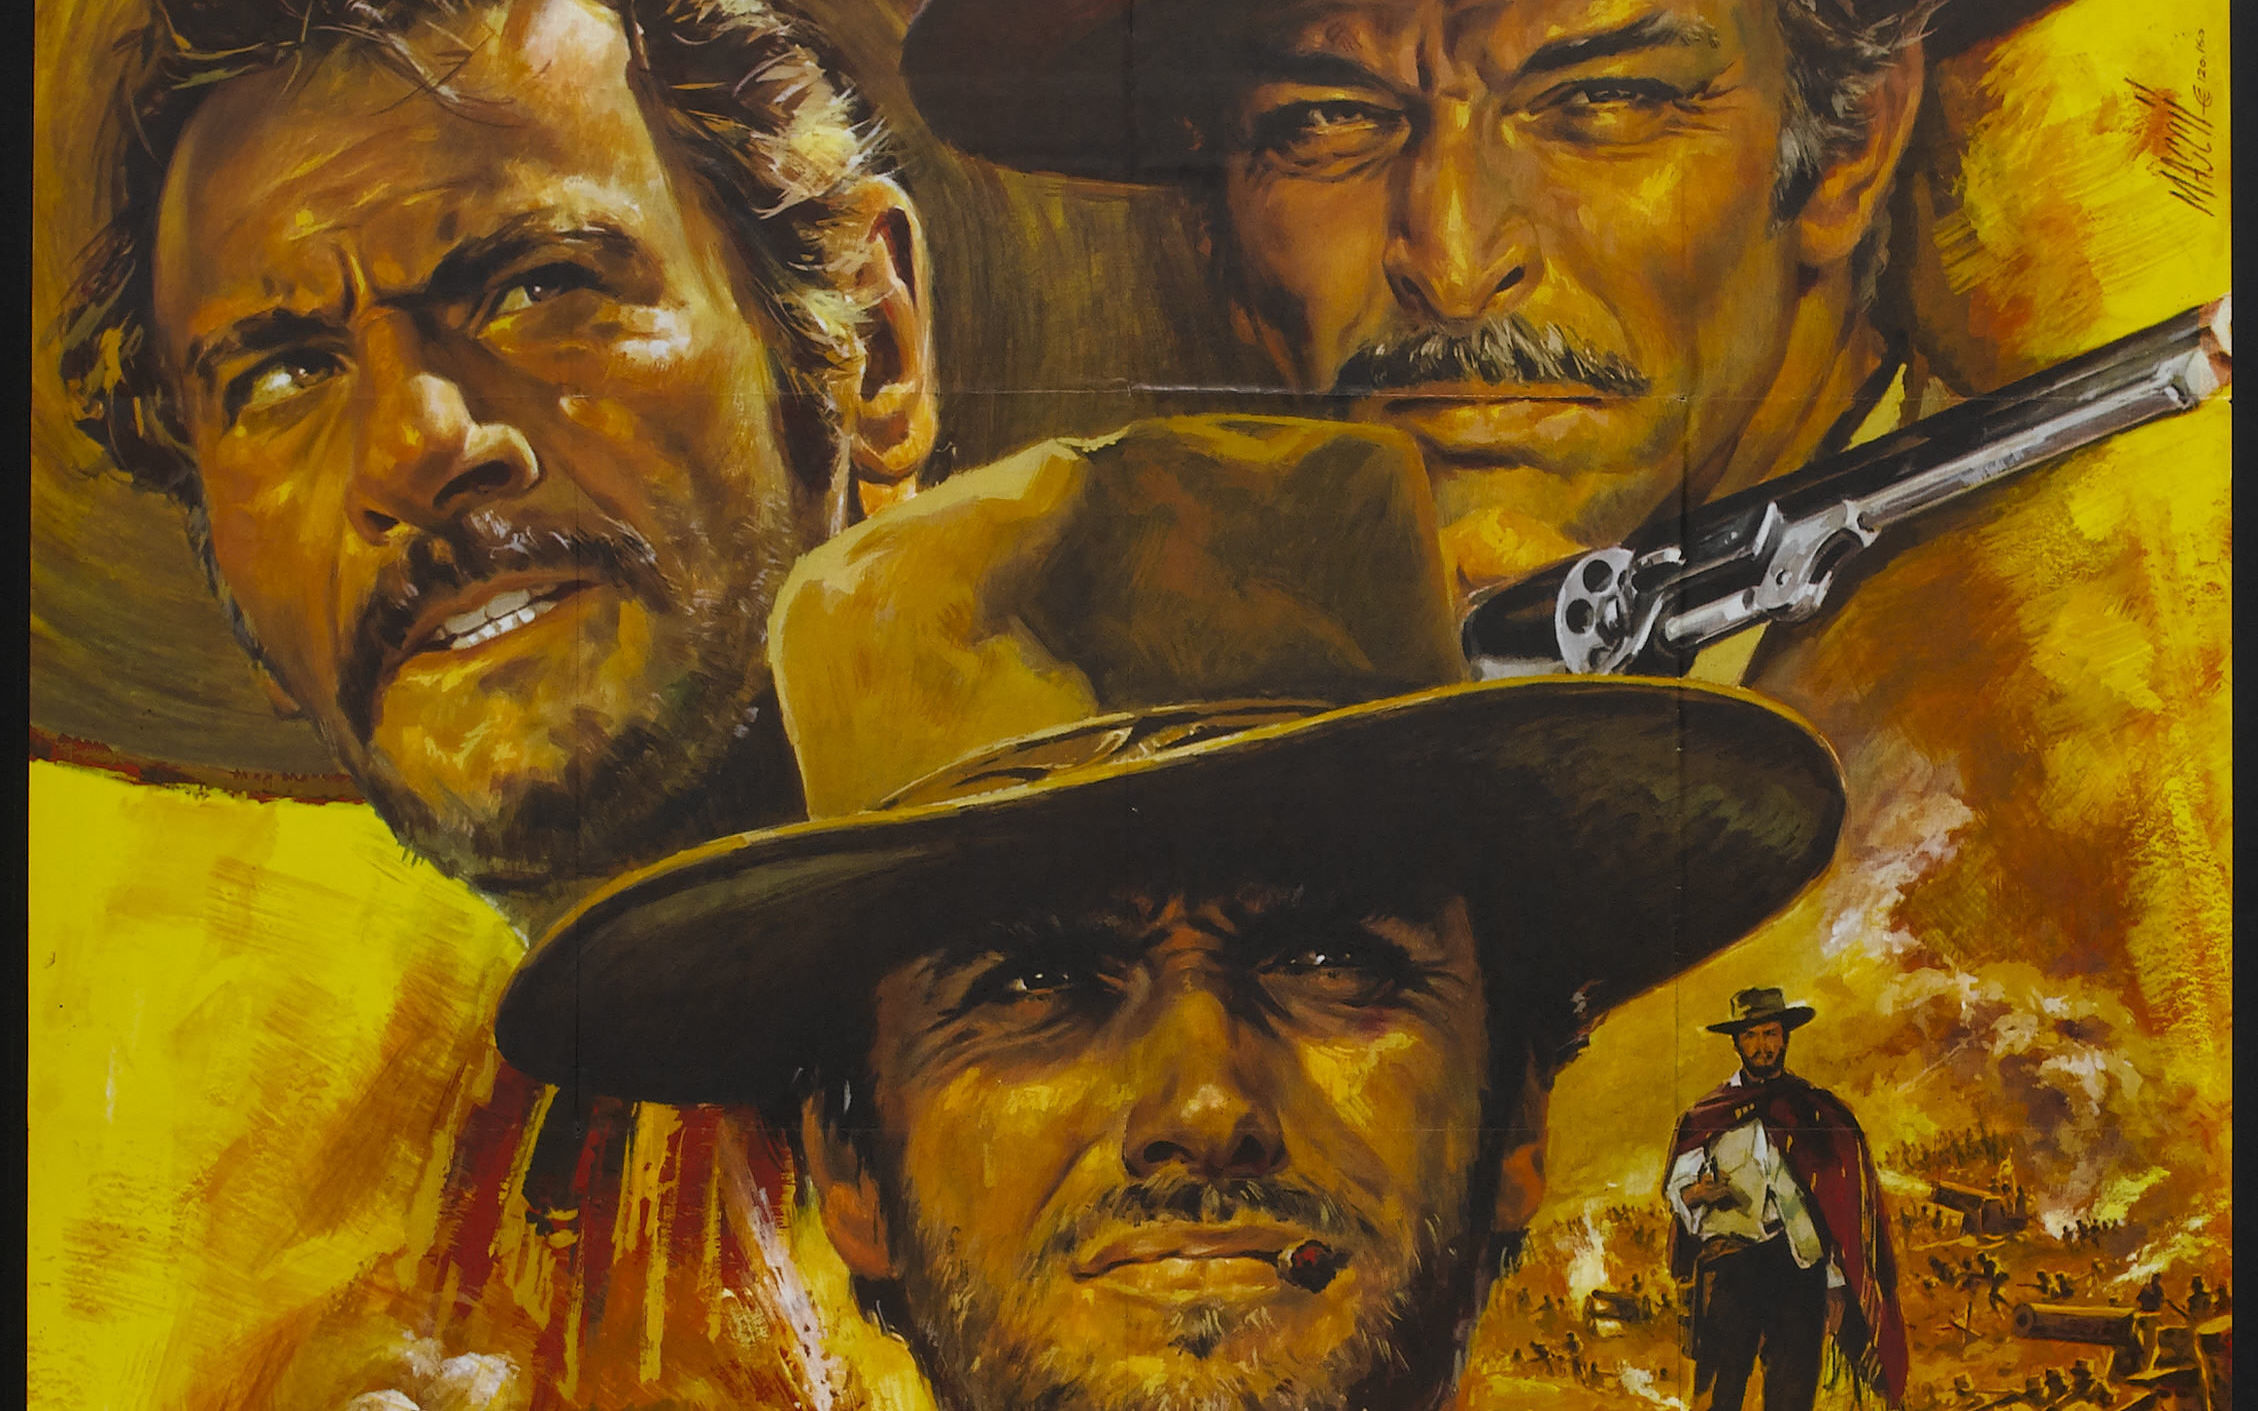 Clint eastwood movie posters